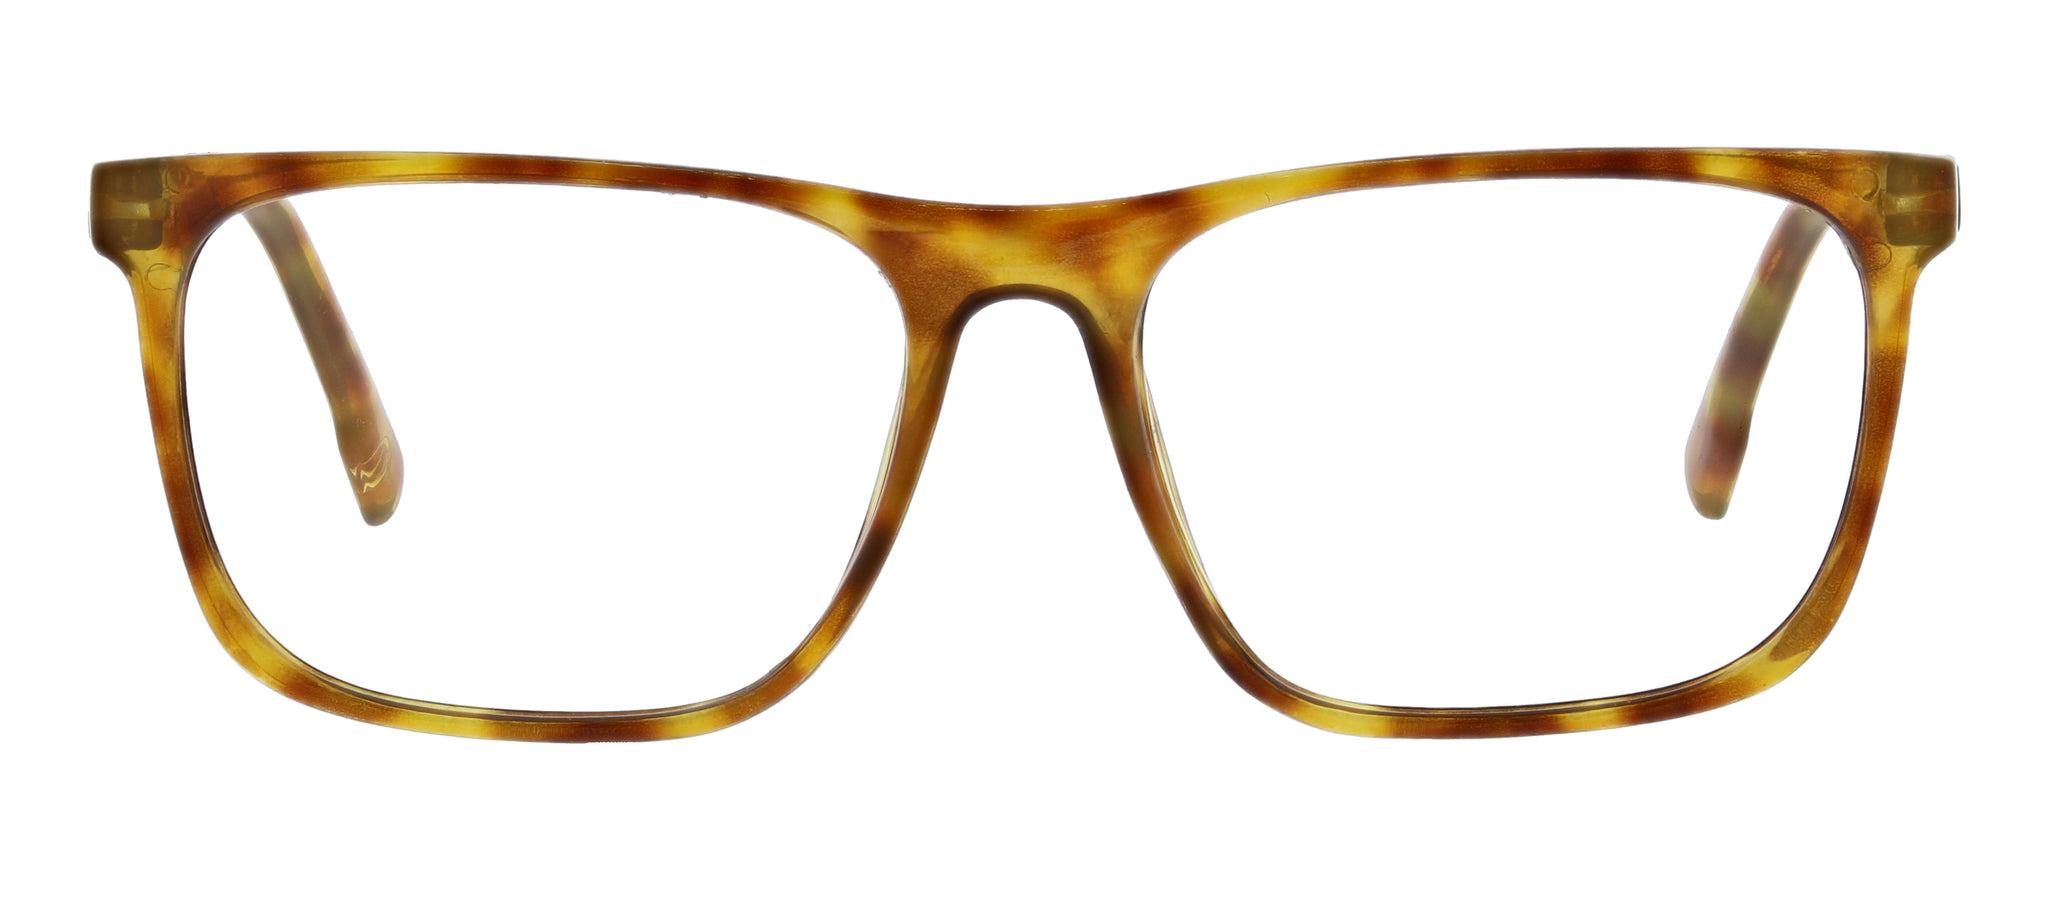 Highbrow Peepers blue light reading glasses